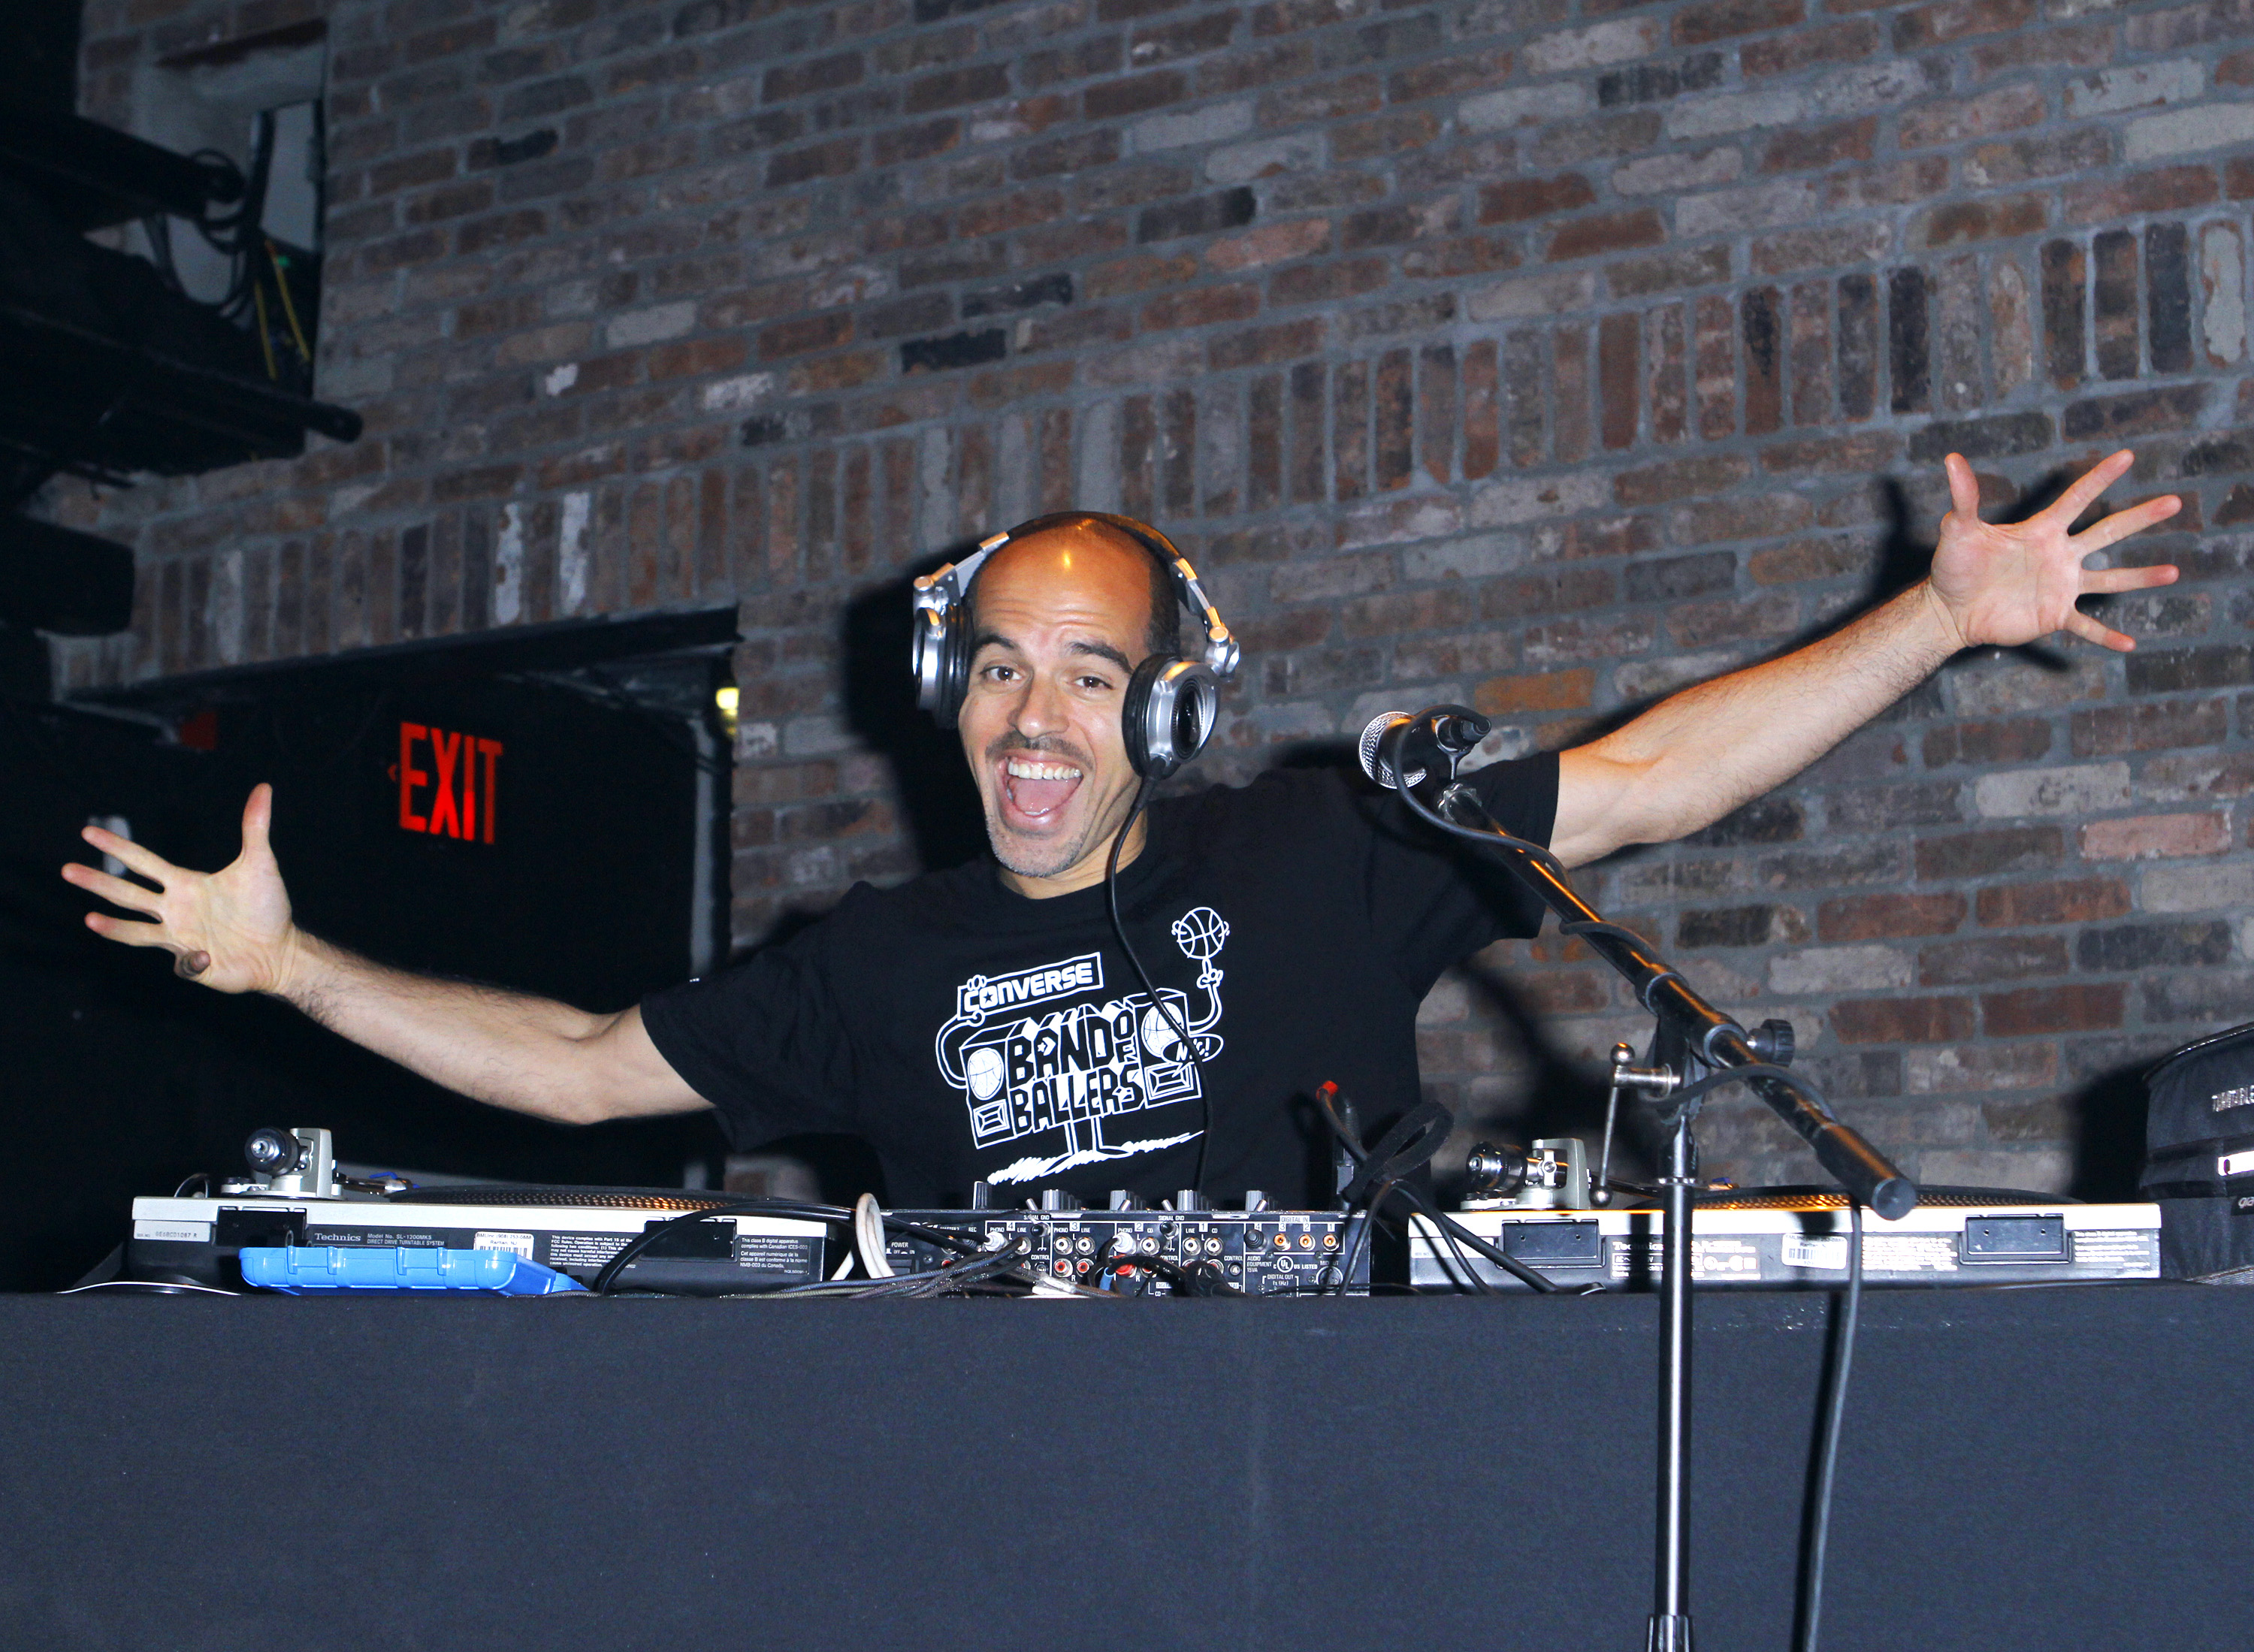 TRAILER: Bobbito Garcia Tells His Story of Going from Sneakerhead to Legendary DJ in This Doc